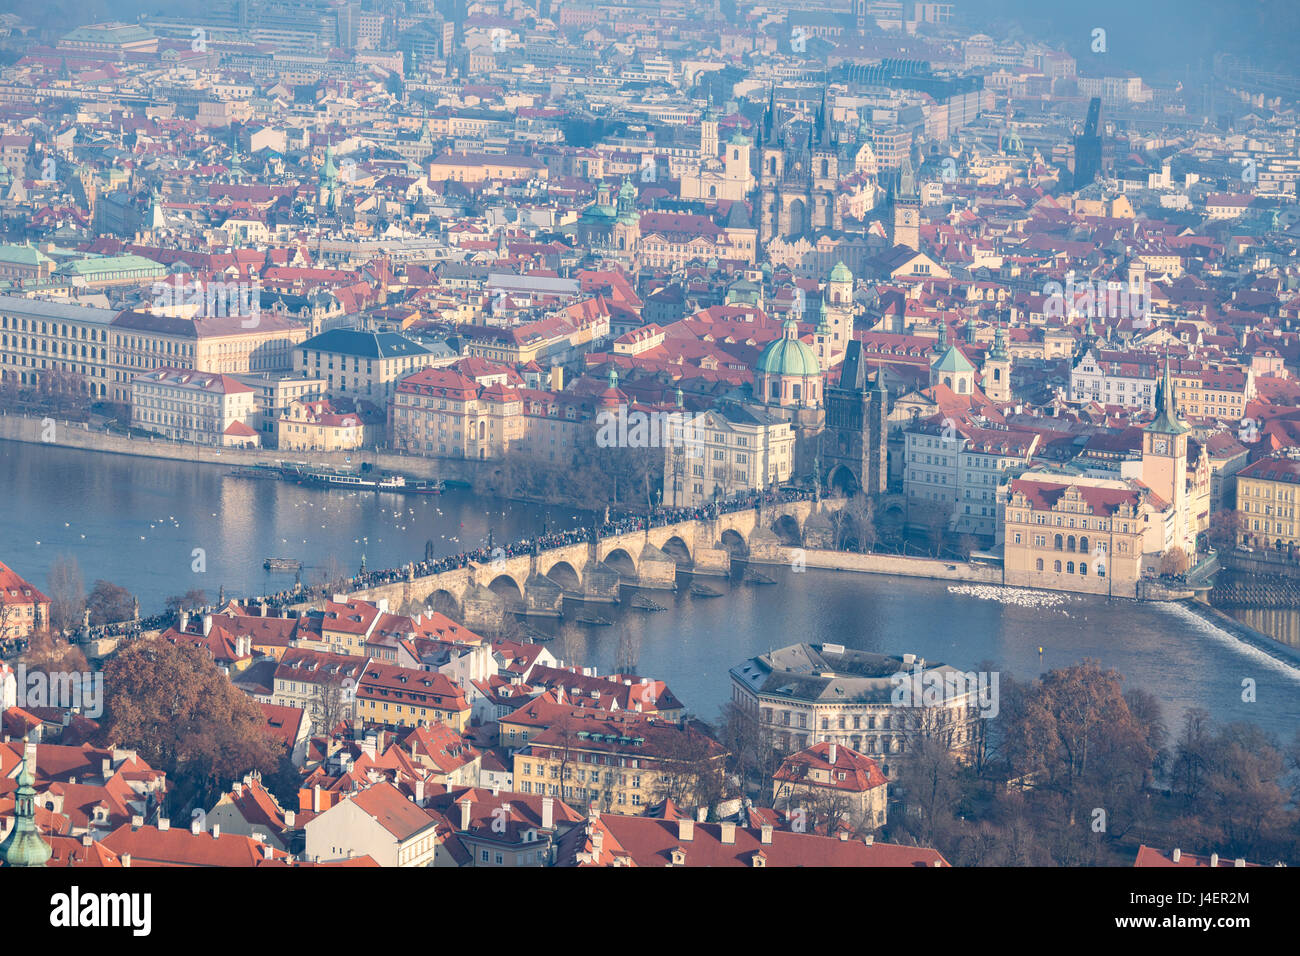 View of typical buildings and ancient churches framed by the River Vltava, Prague, Czech Republic, Europe - Stock Image